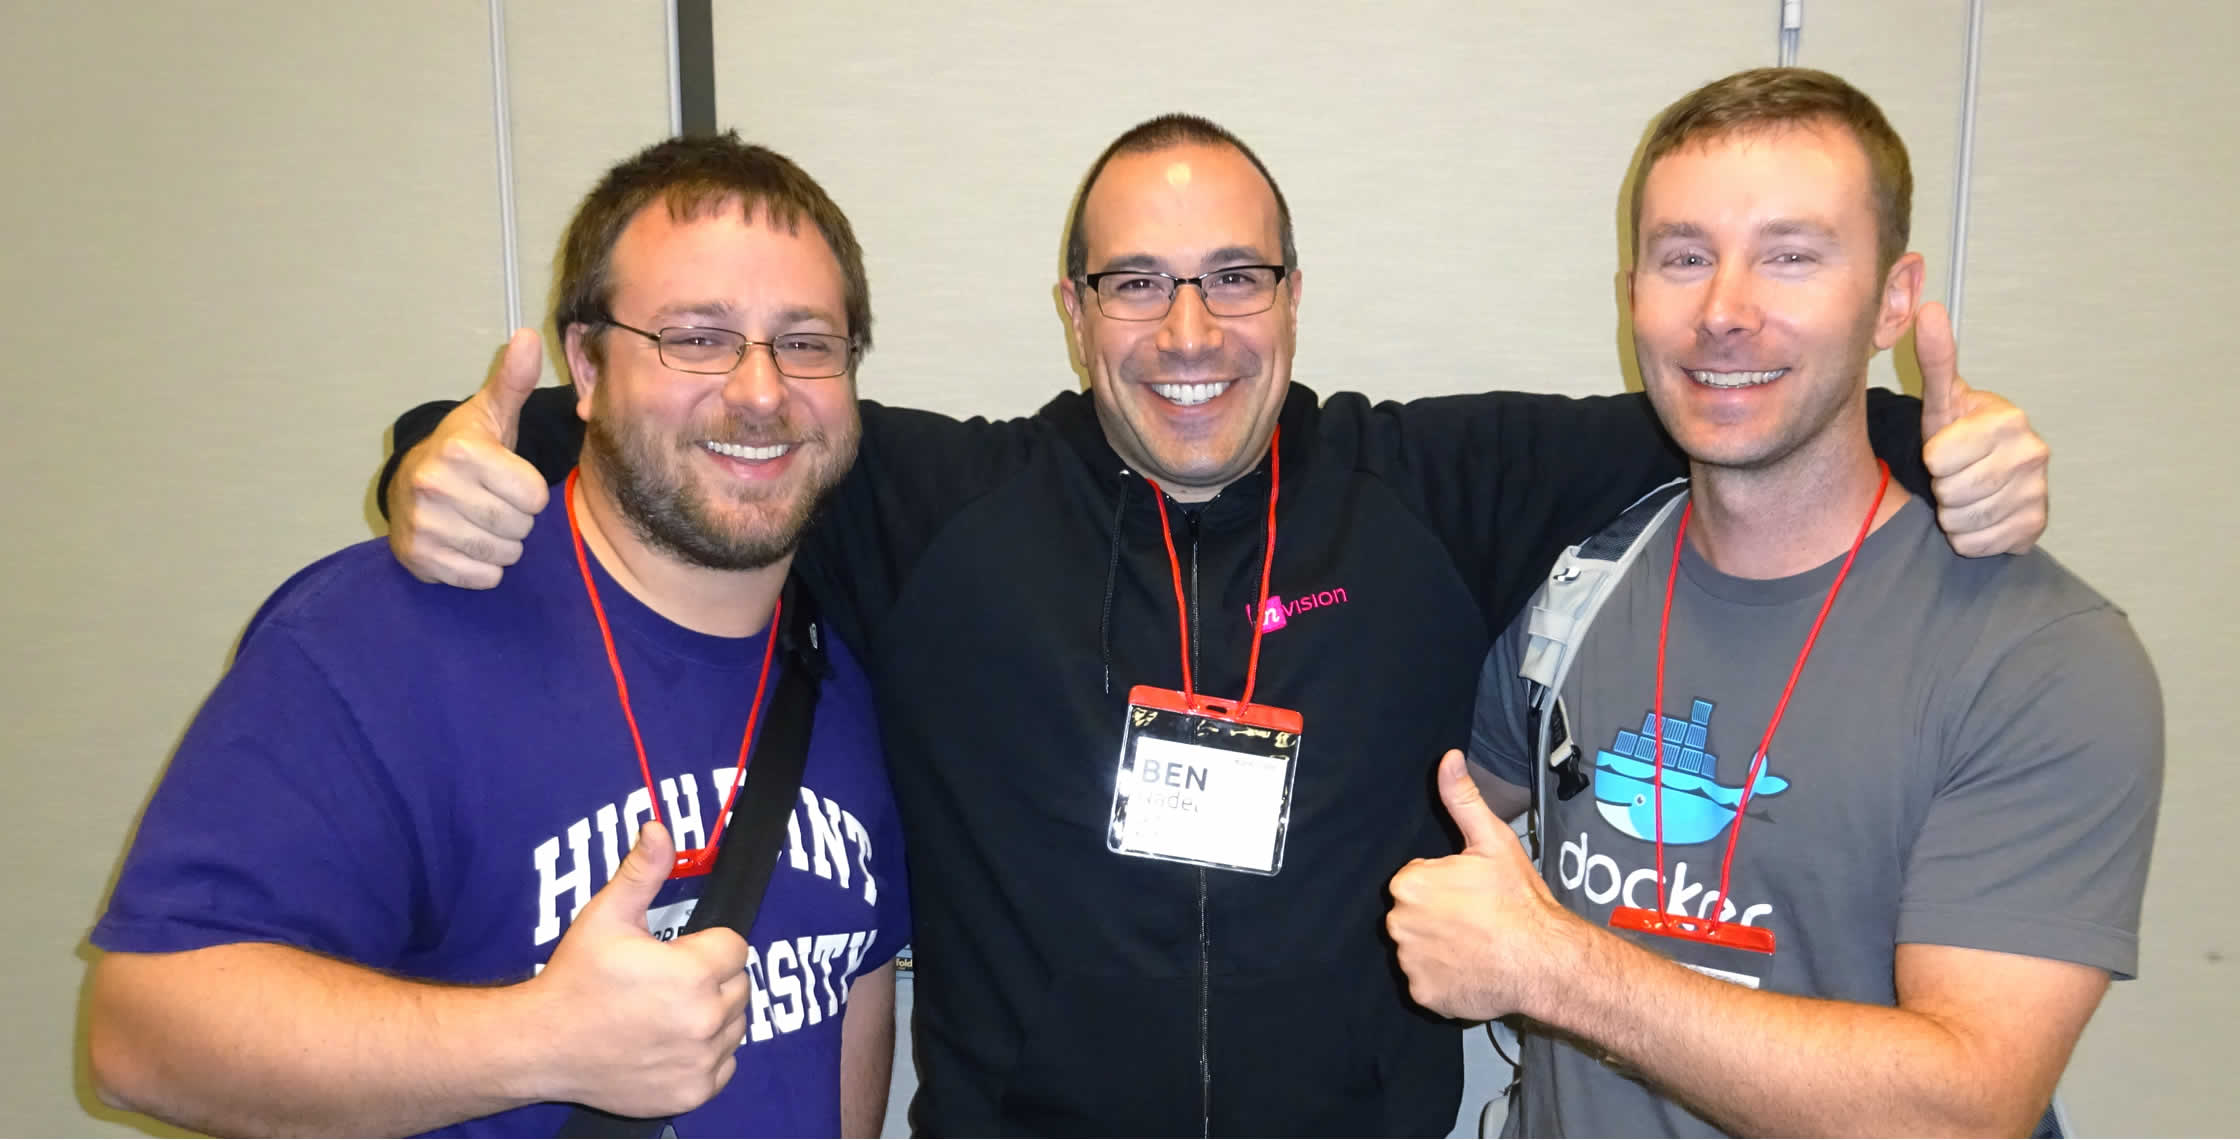 Ben Nadel at NCDevCon 2016 (Raleigh, NC) with: George Garrett Neisler and Chris Bestall